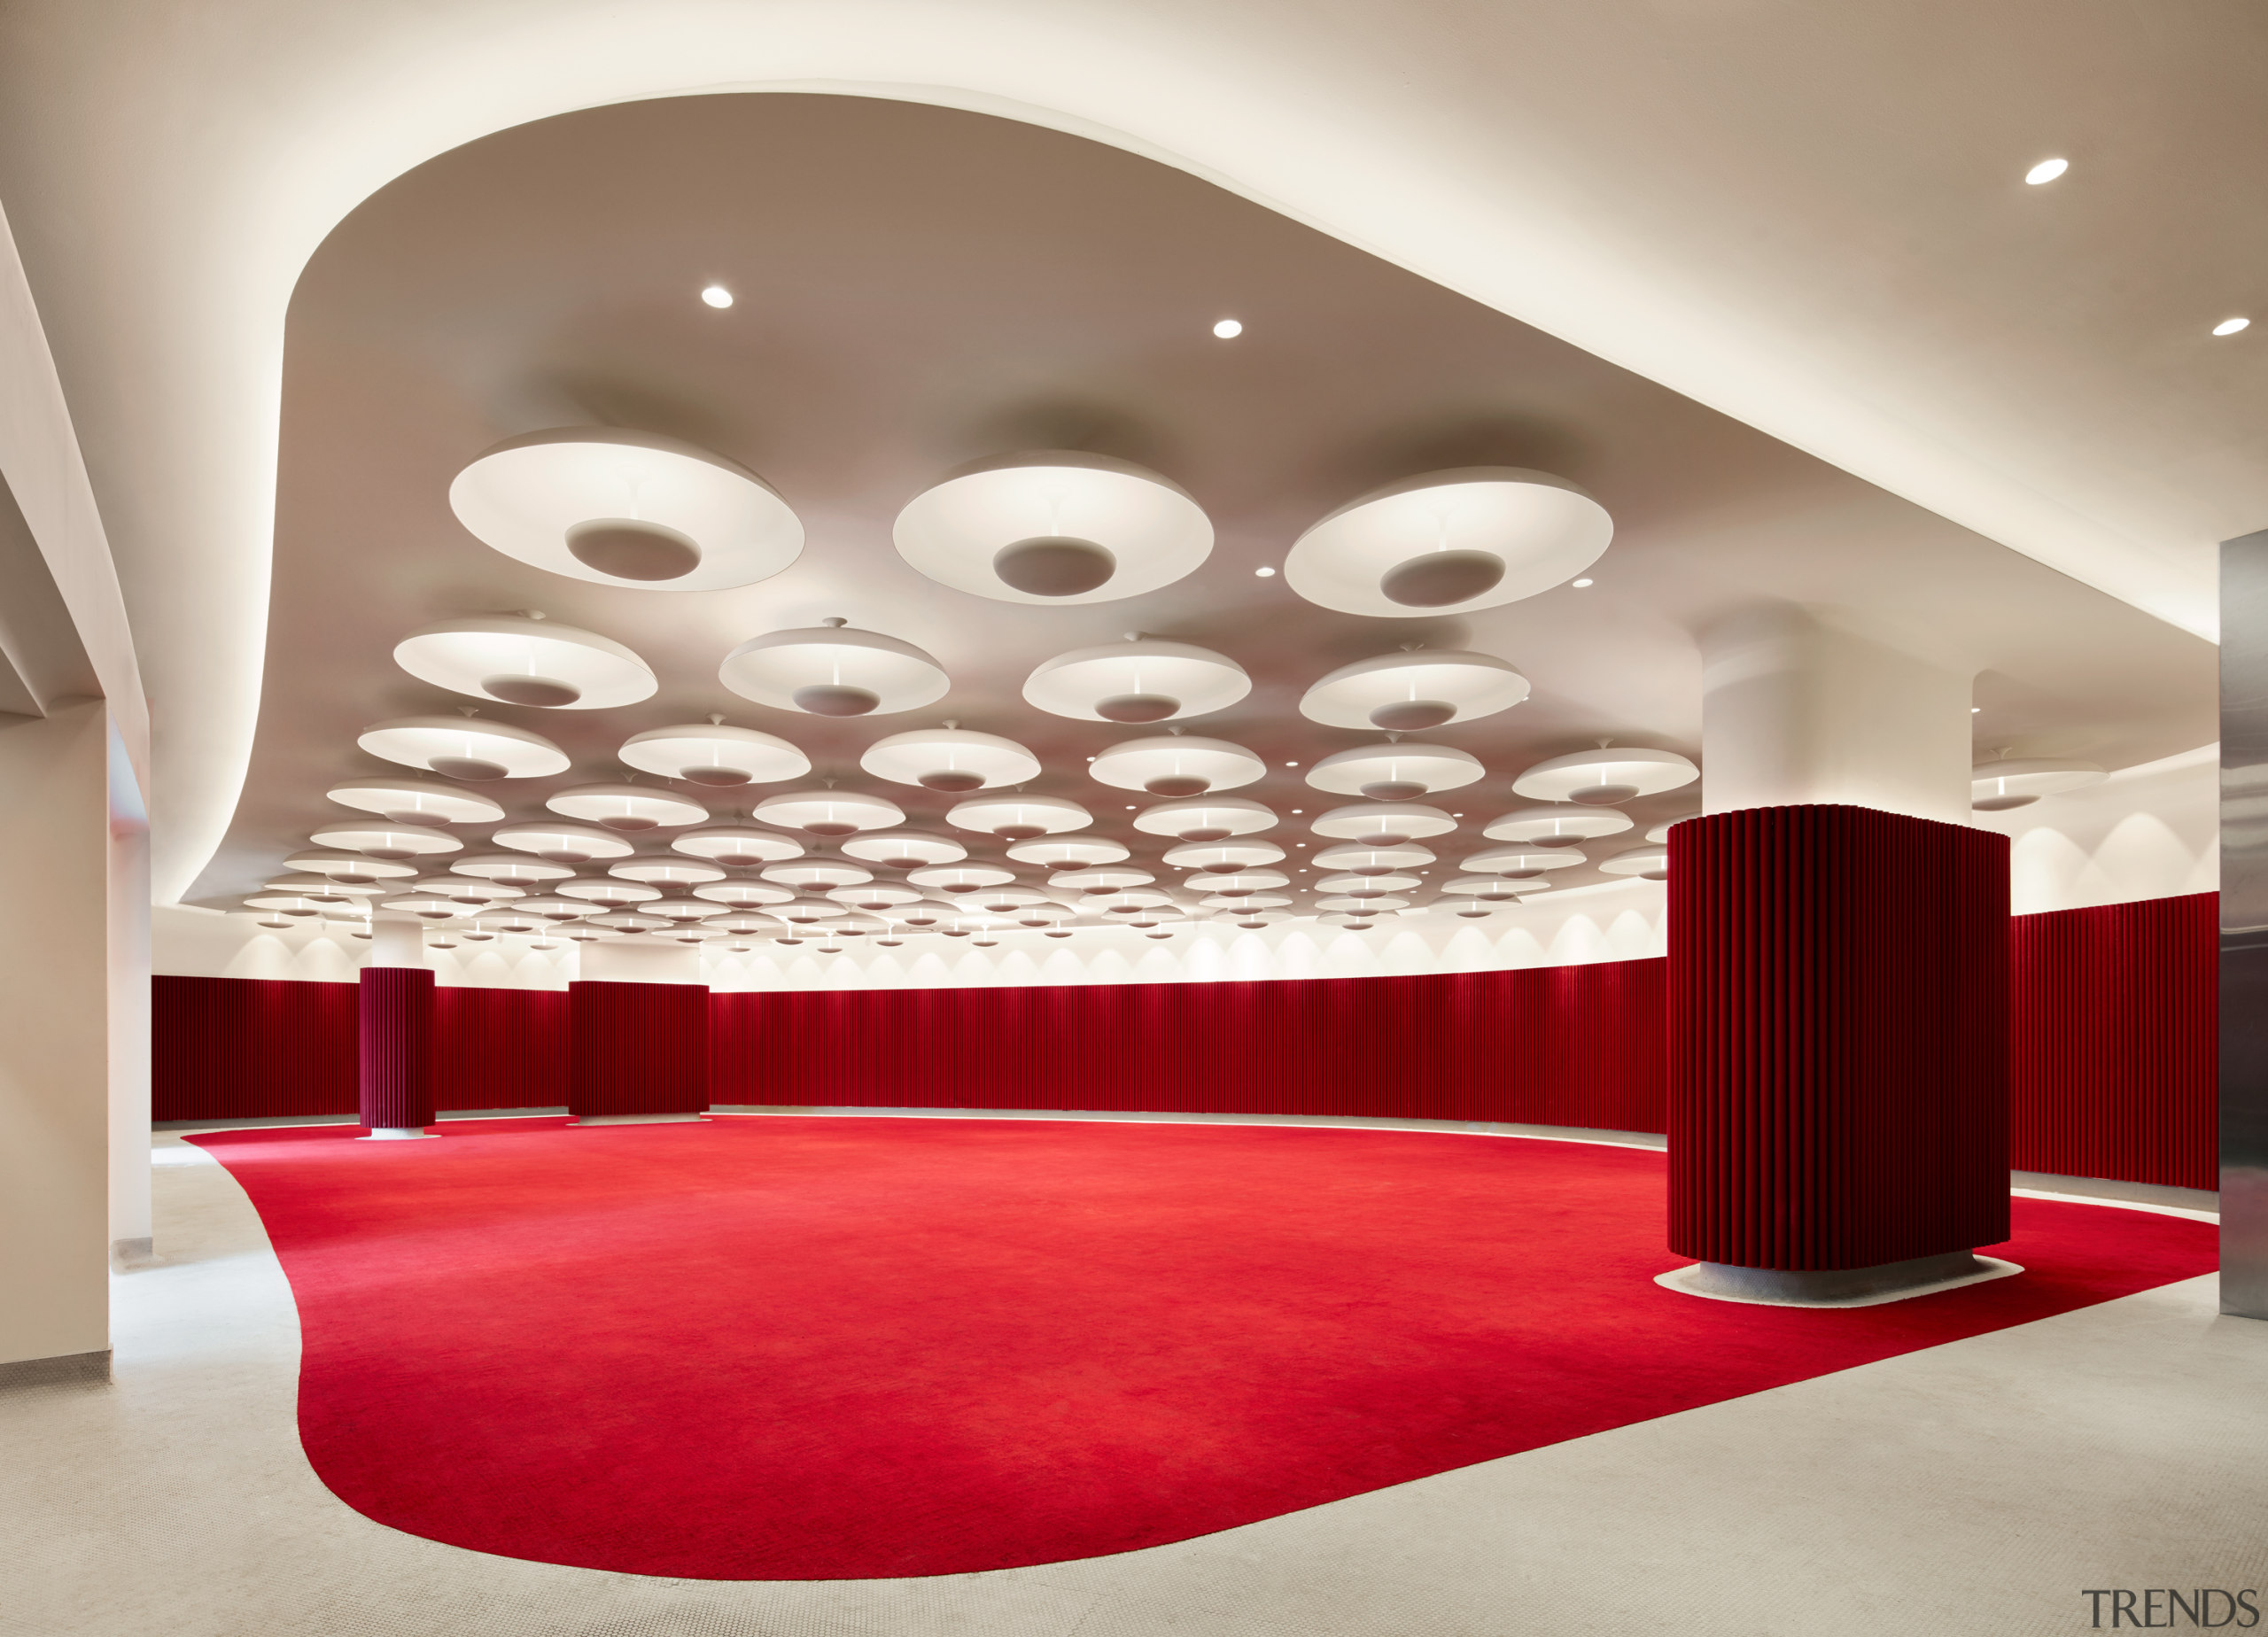 The 1962 Room at the TWA Hotel offers architecture, 1962 room, TWA Hotel, Ballroom